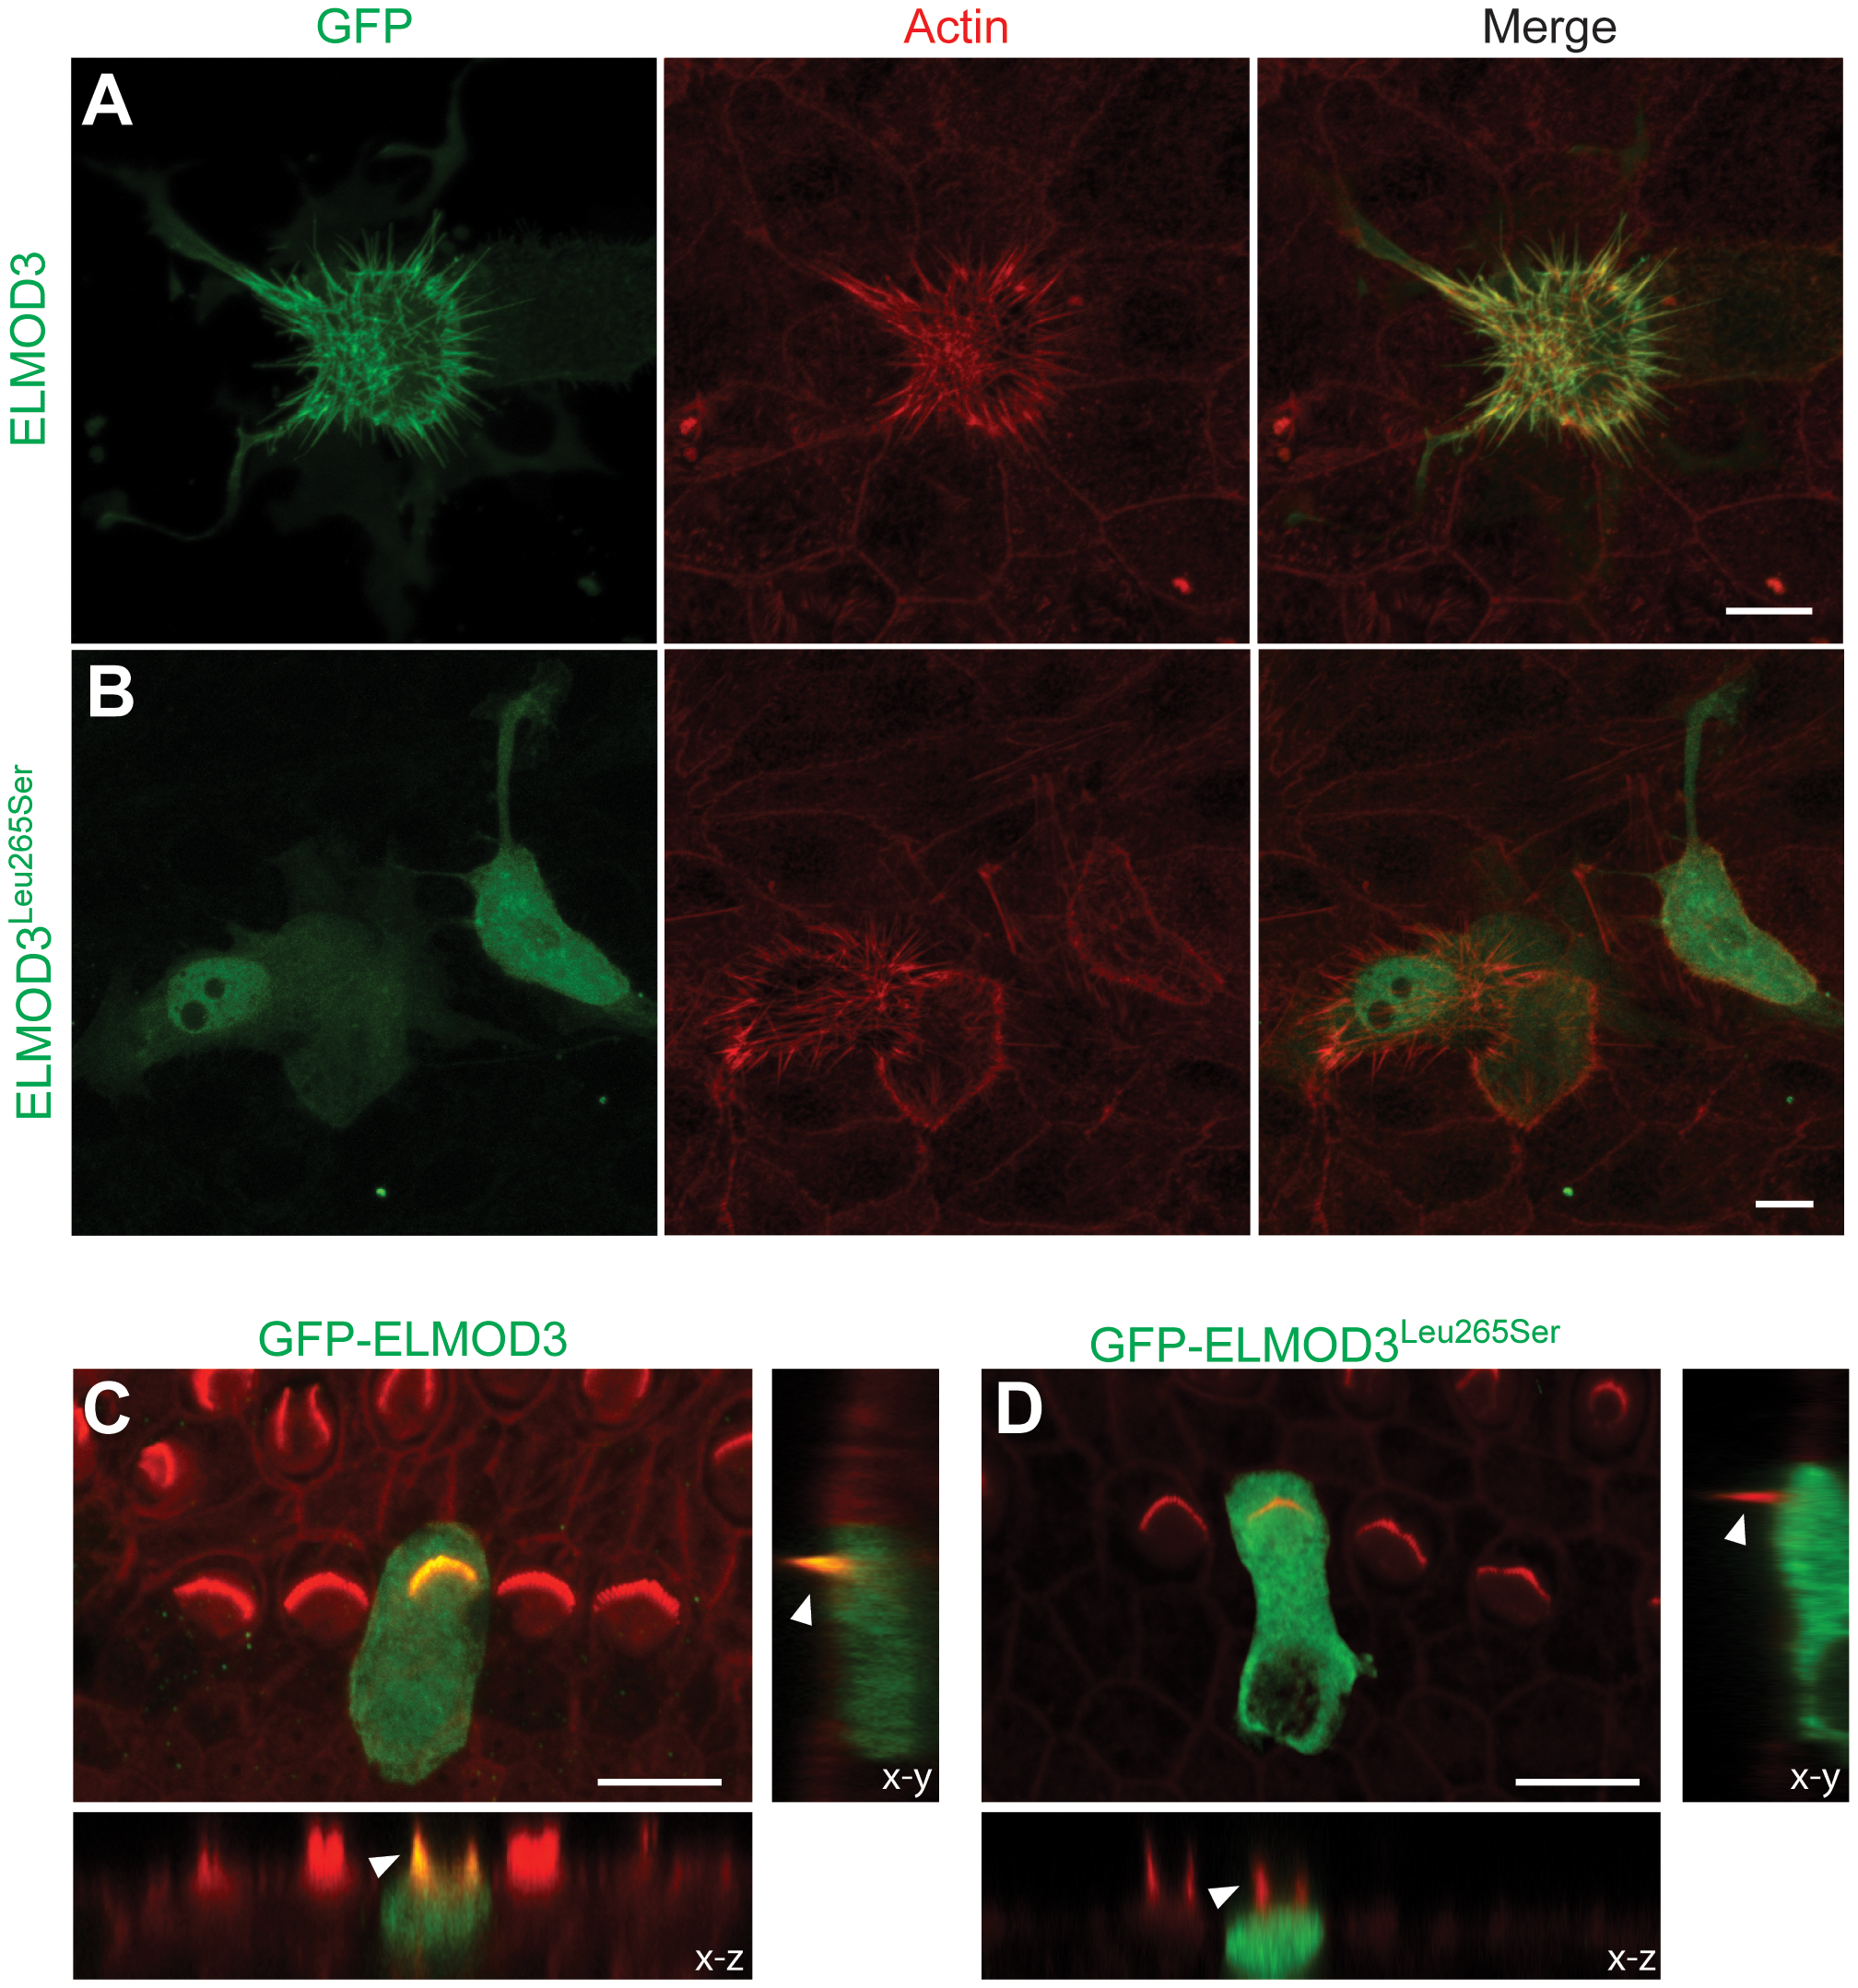 ELMOD3 accumulates at actin-based structures.